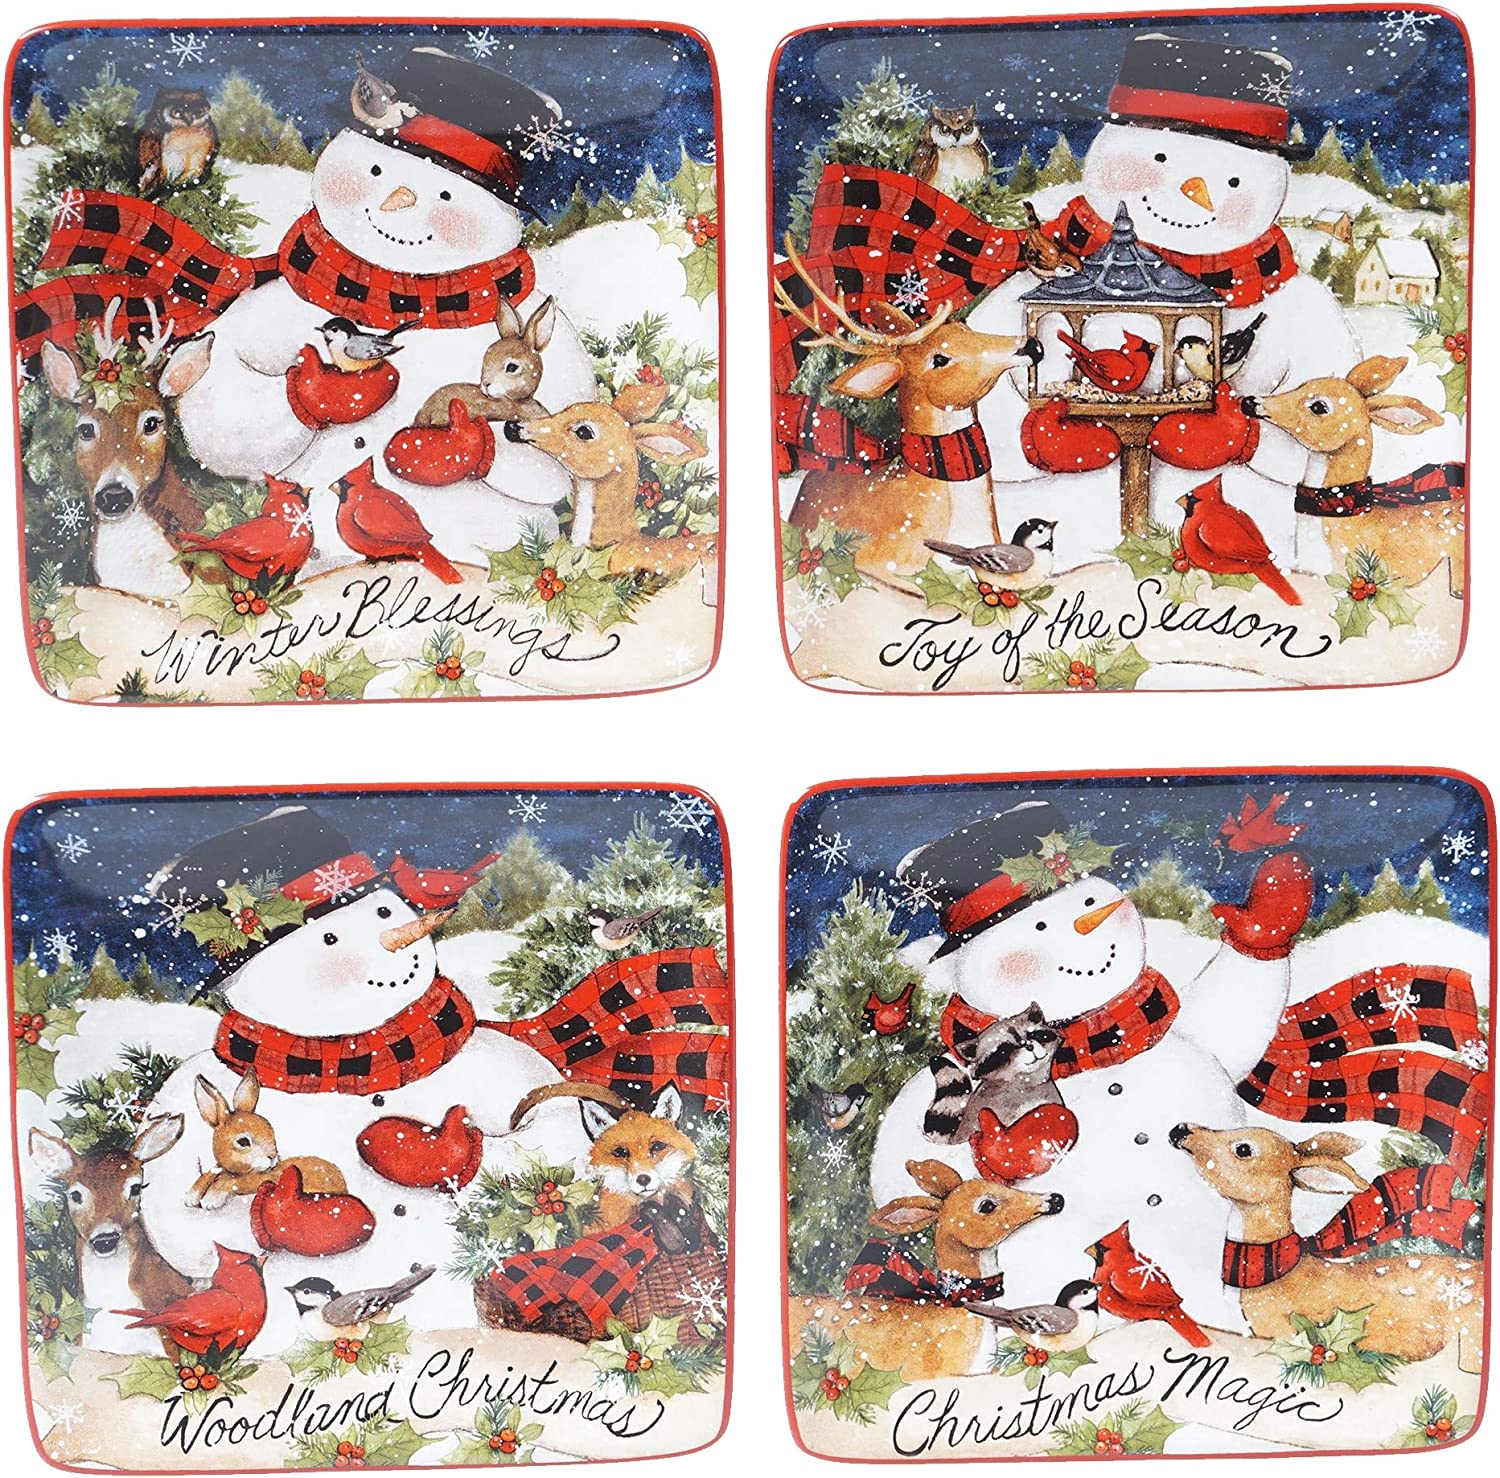 UKN Magic Oakland Mall of Christmas Snowman Plates 6-inch Canape Max 57% OFF Se Luncheon